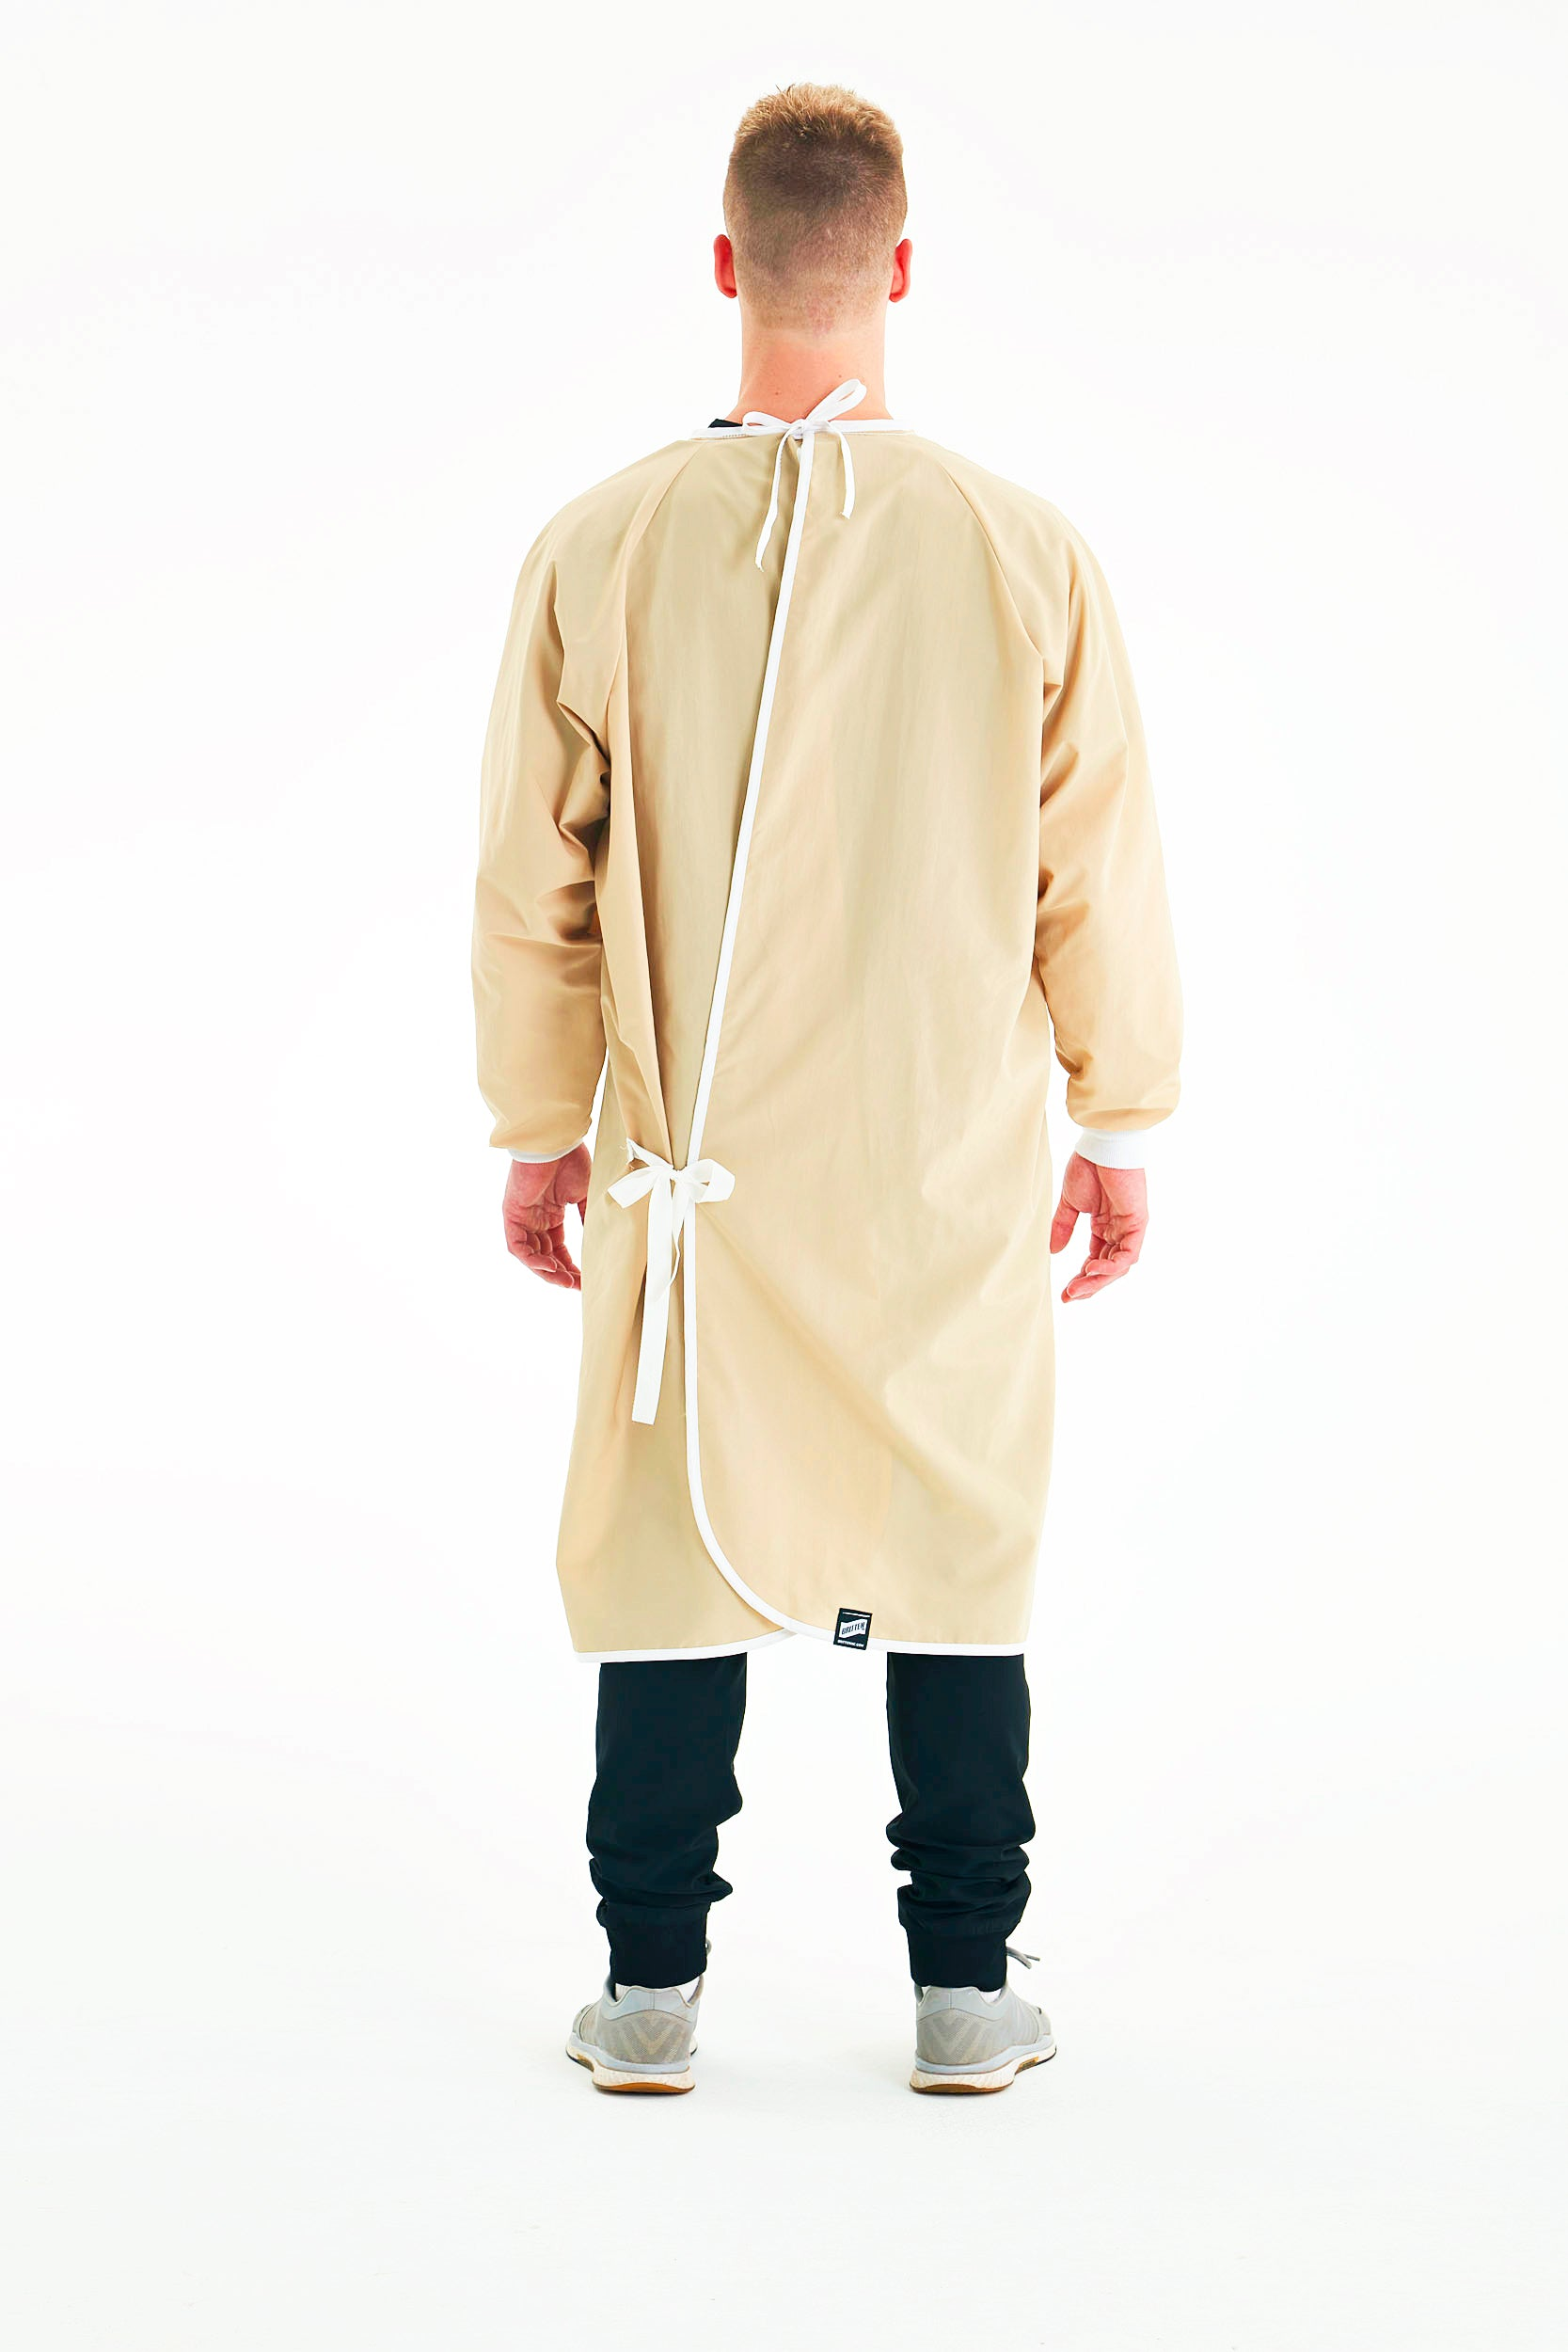 man-in-mask-wearing-khaki-reusable-level-2-gown